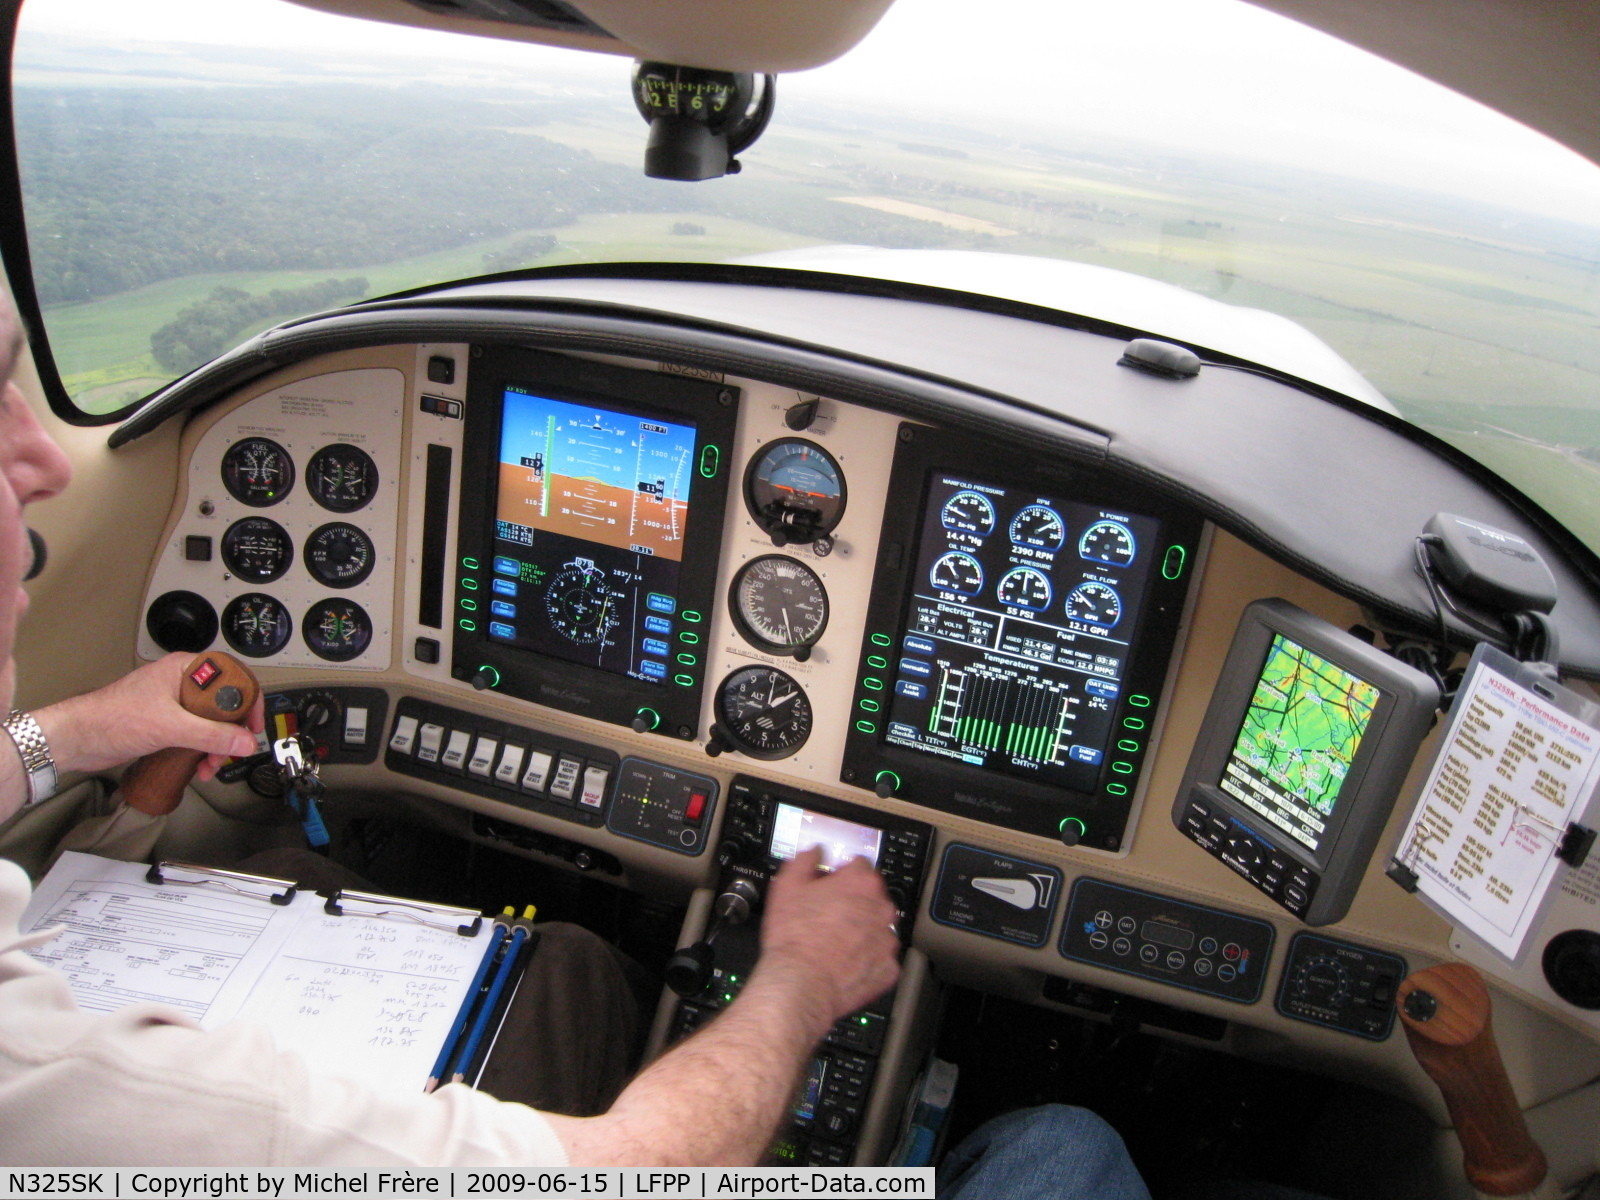 N325SK, 2005 Lancair LC41-550FG C/N 41528, Just before landing at LFPP